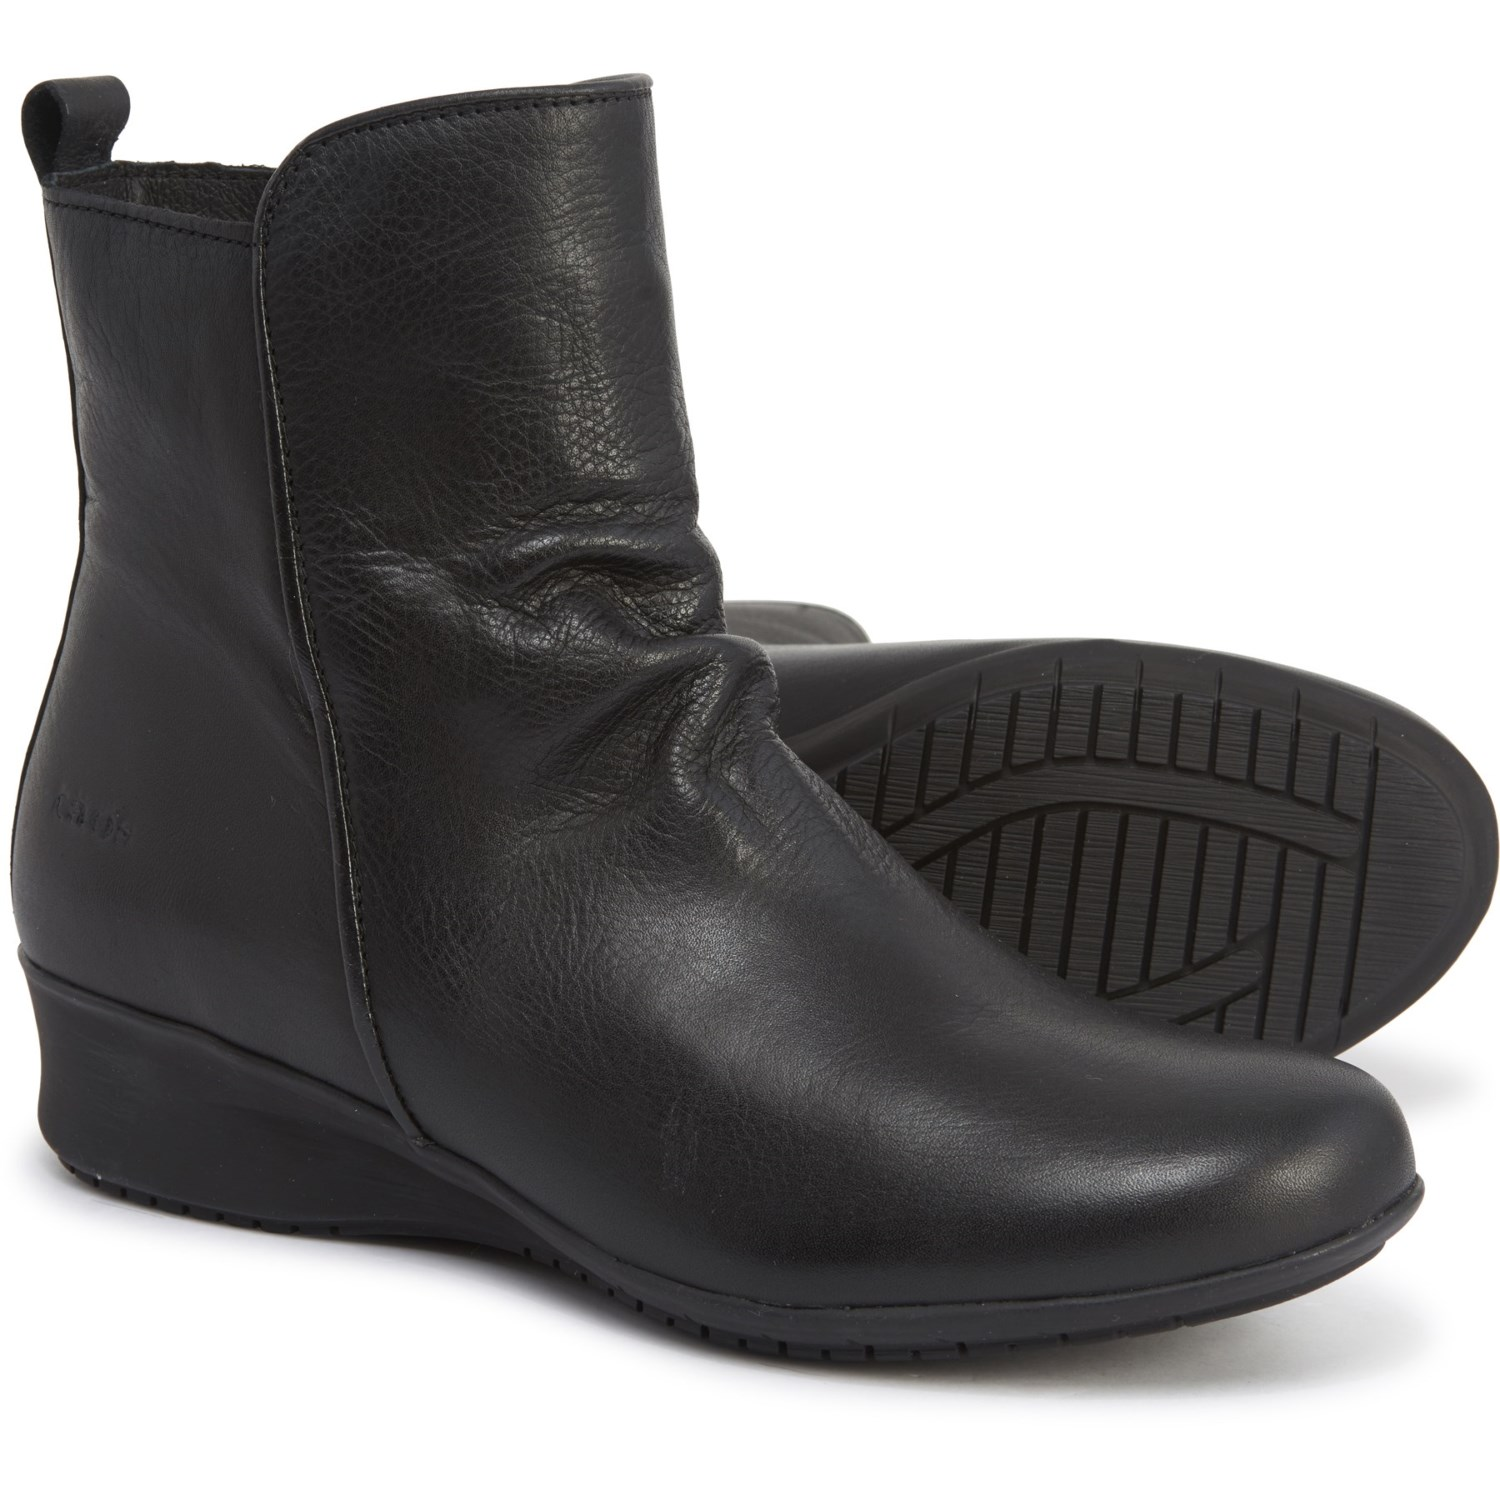 Taos Footwear Made in Portugal Elite Booties Leather (For Women)